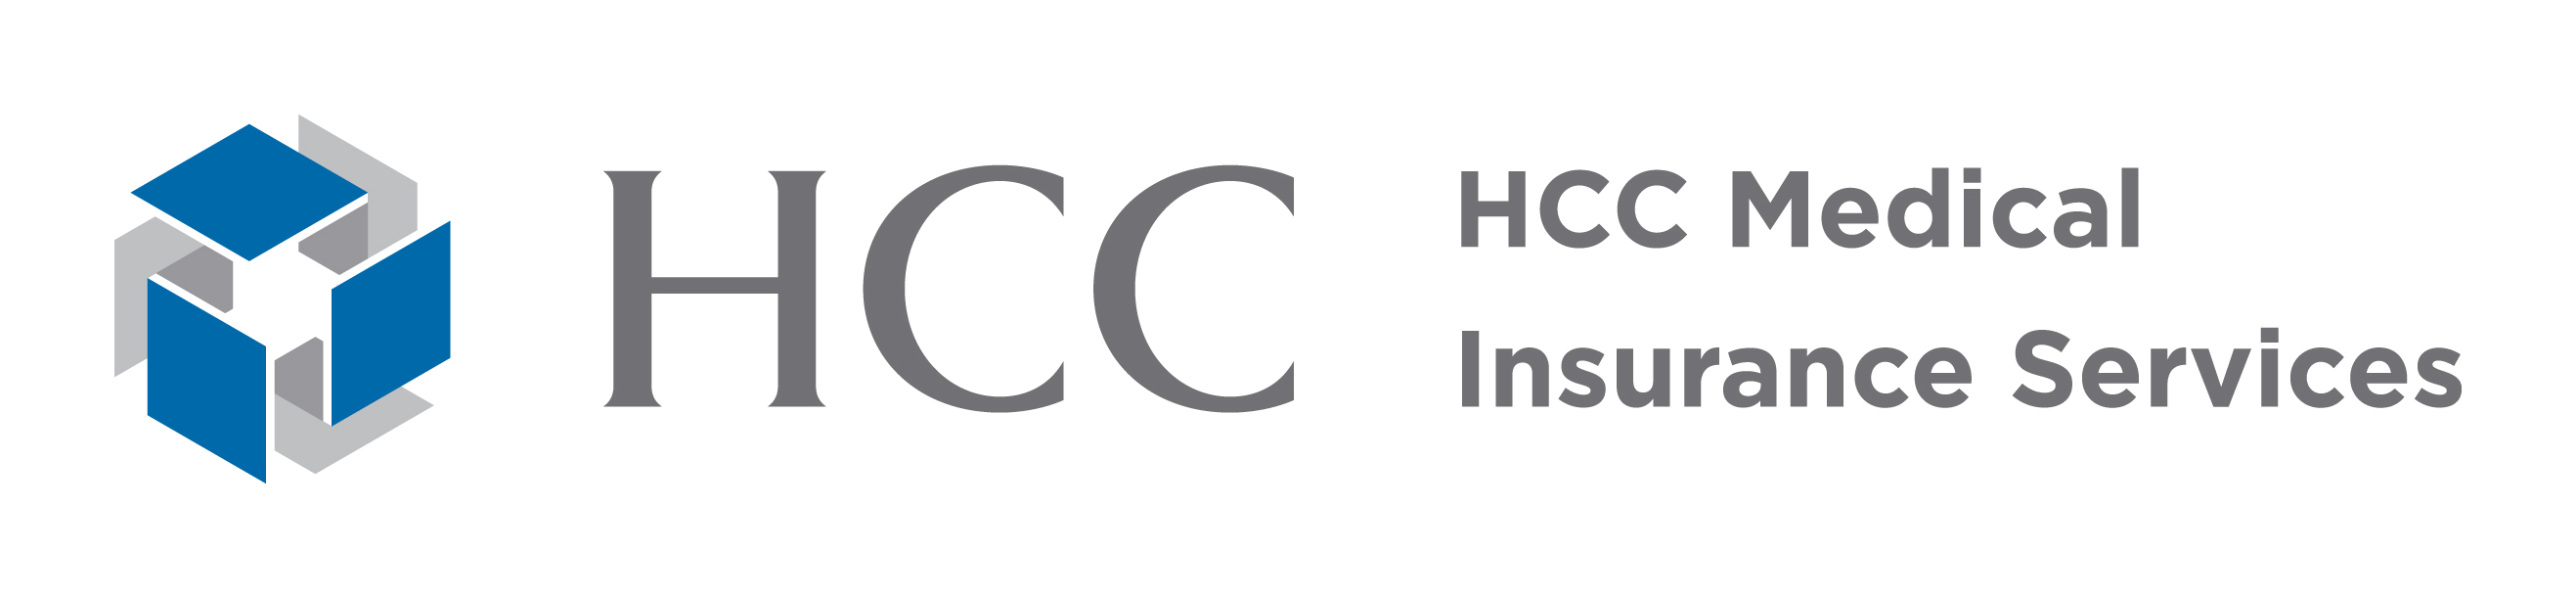 hcc medical insurance services photo - 1